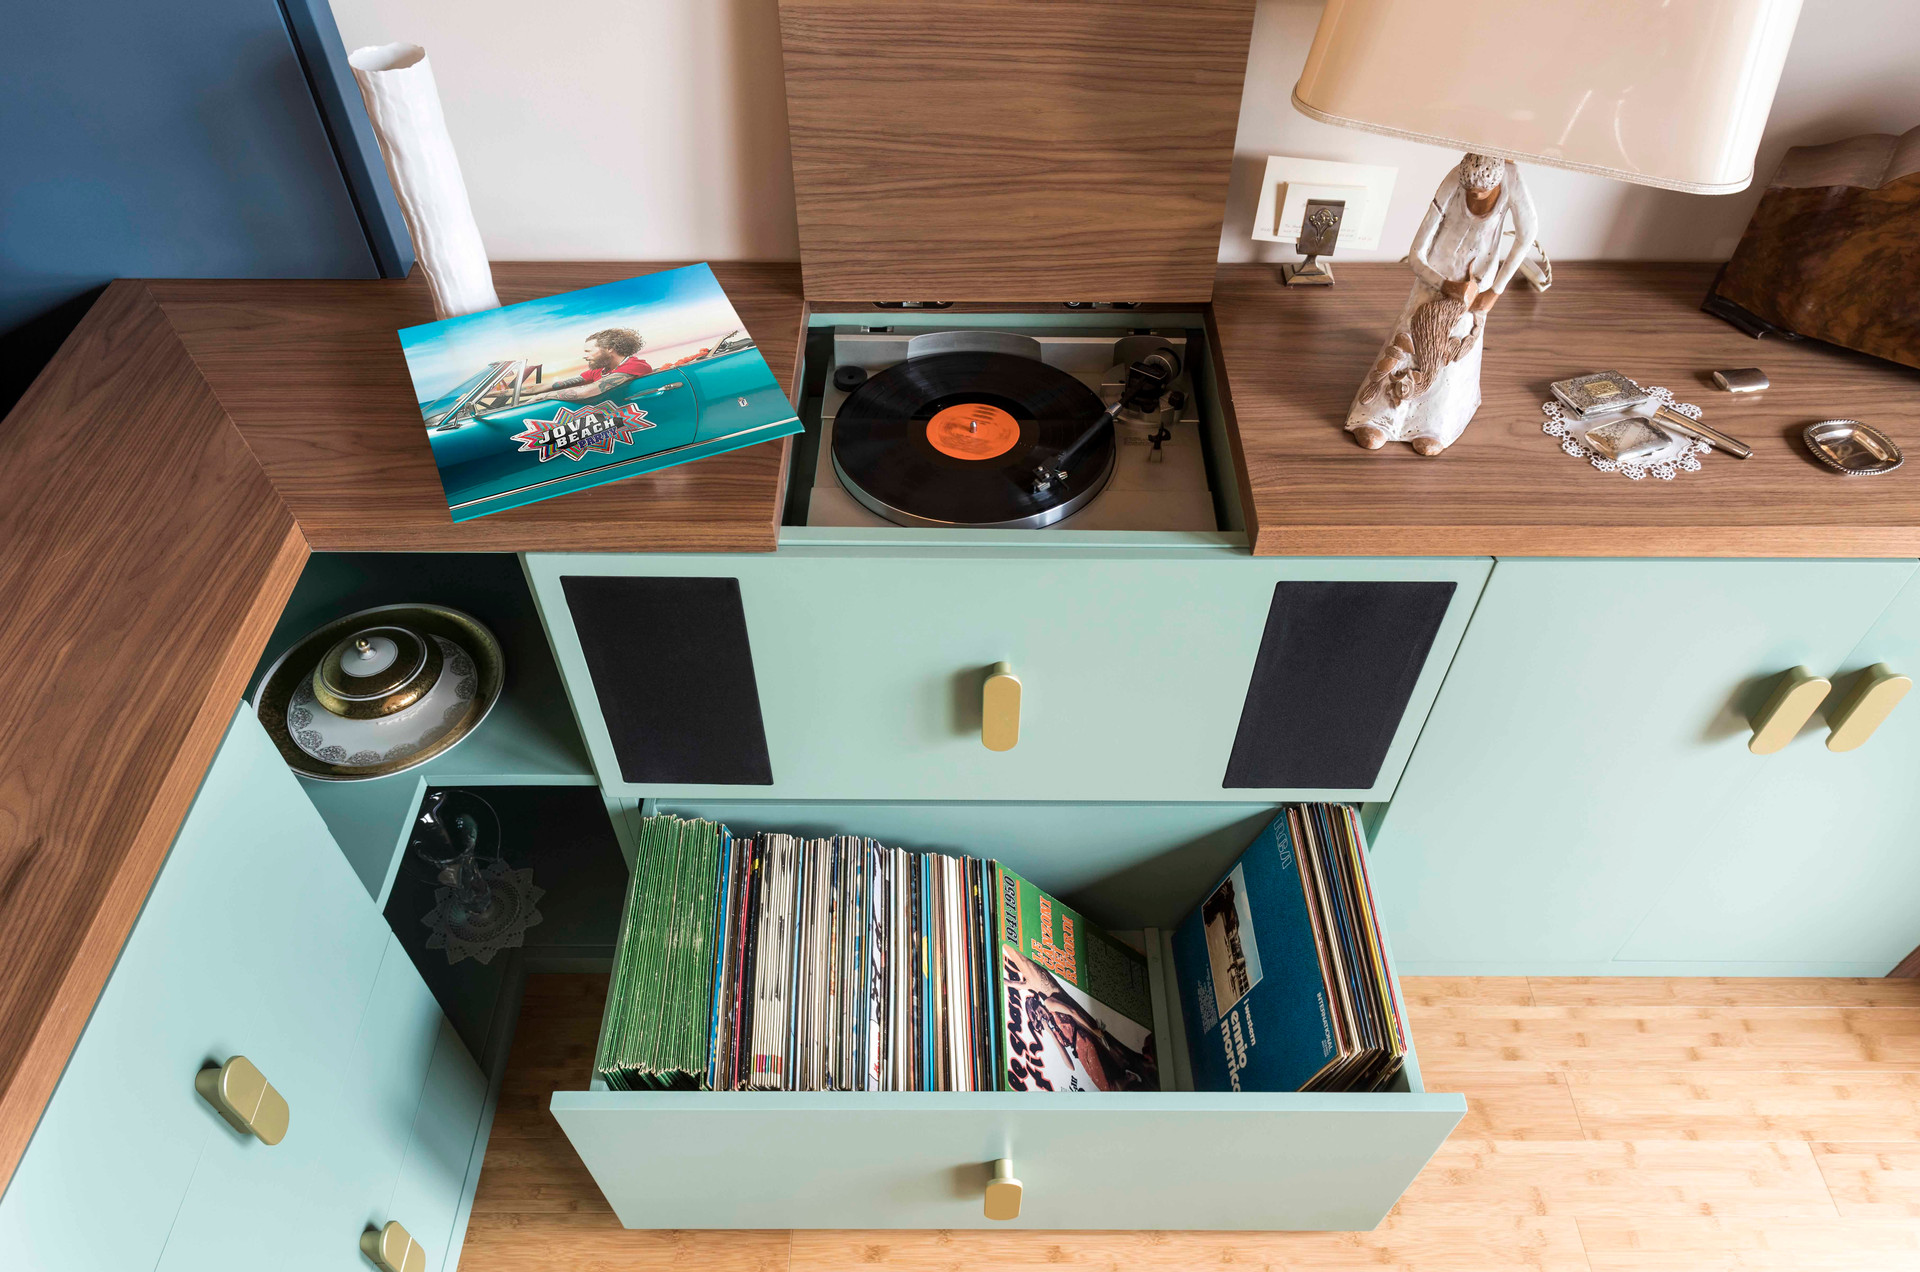 arredo con giradischi integrato I furniture with integrated turntable